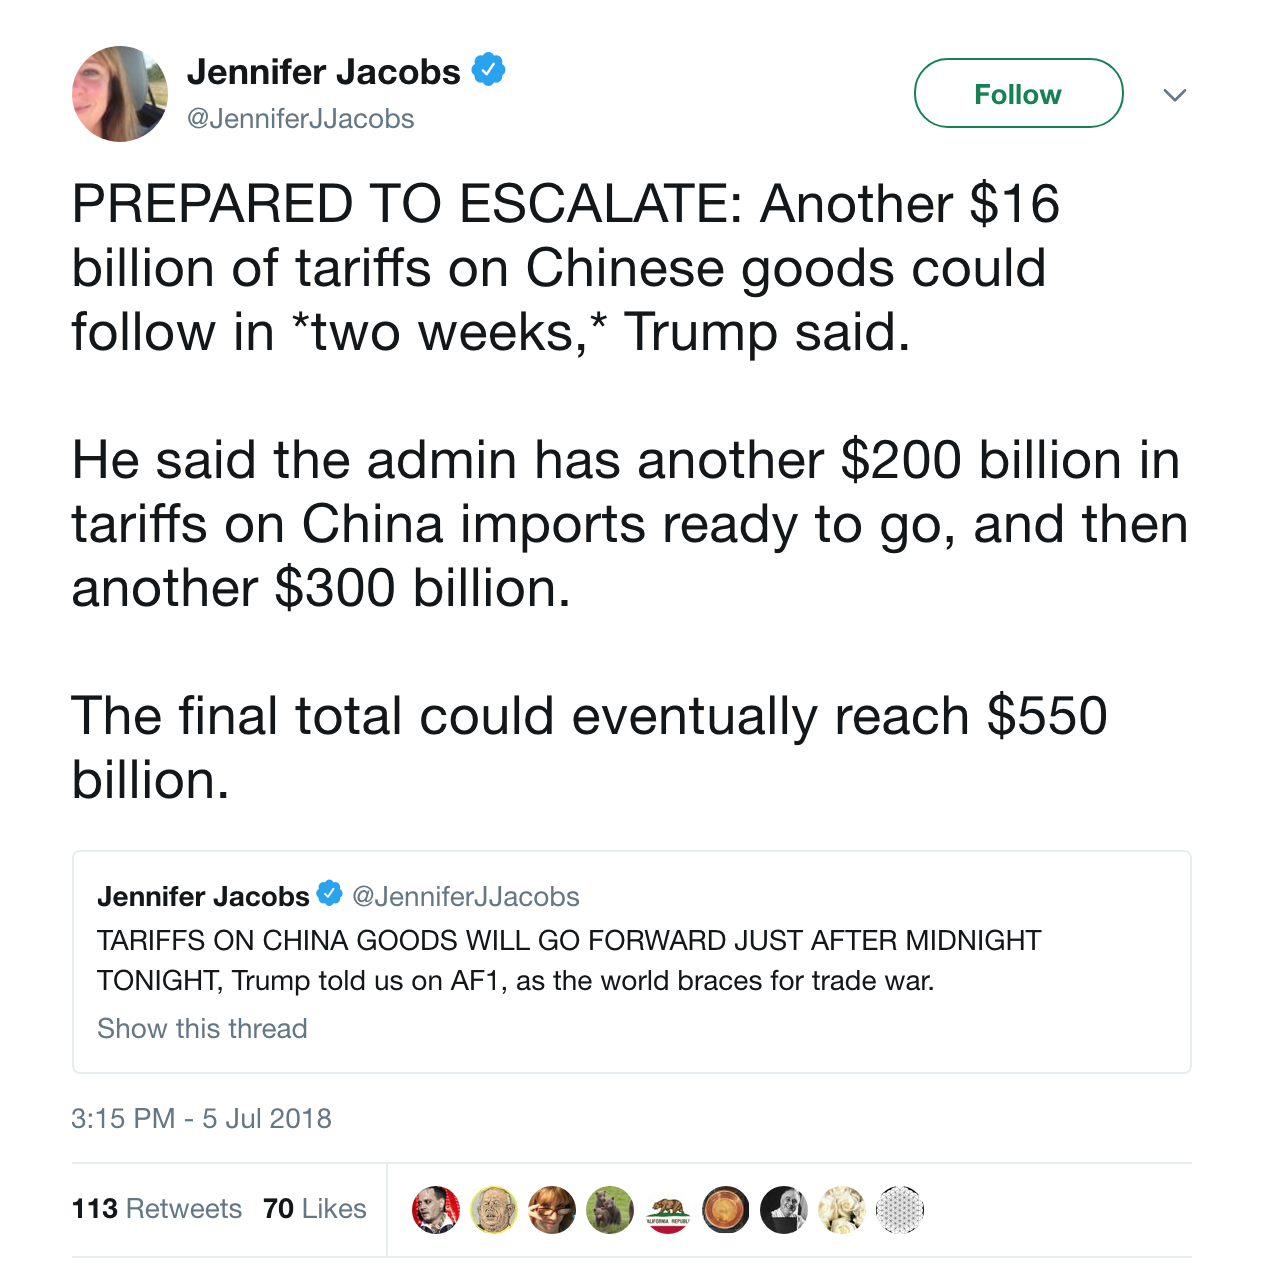 Screenshot of Bloomberg reporter text on what President Trump said on the plane on tariffs